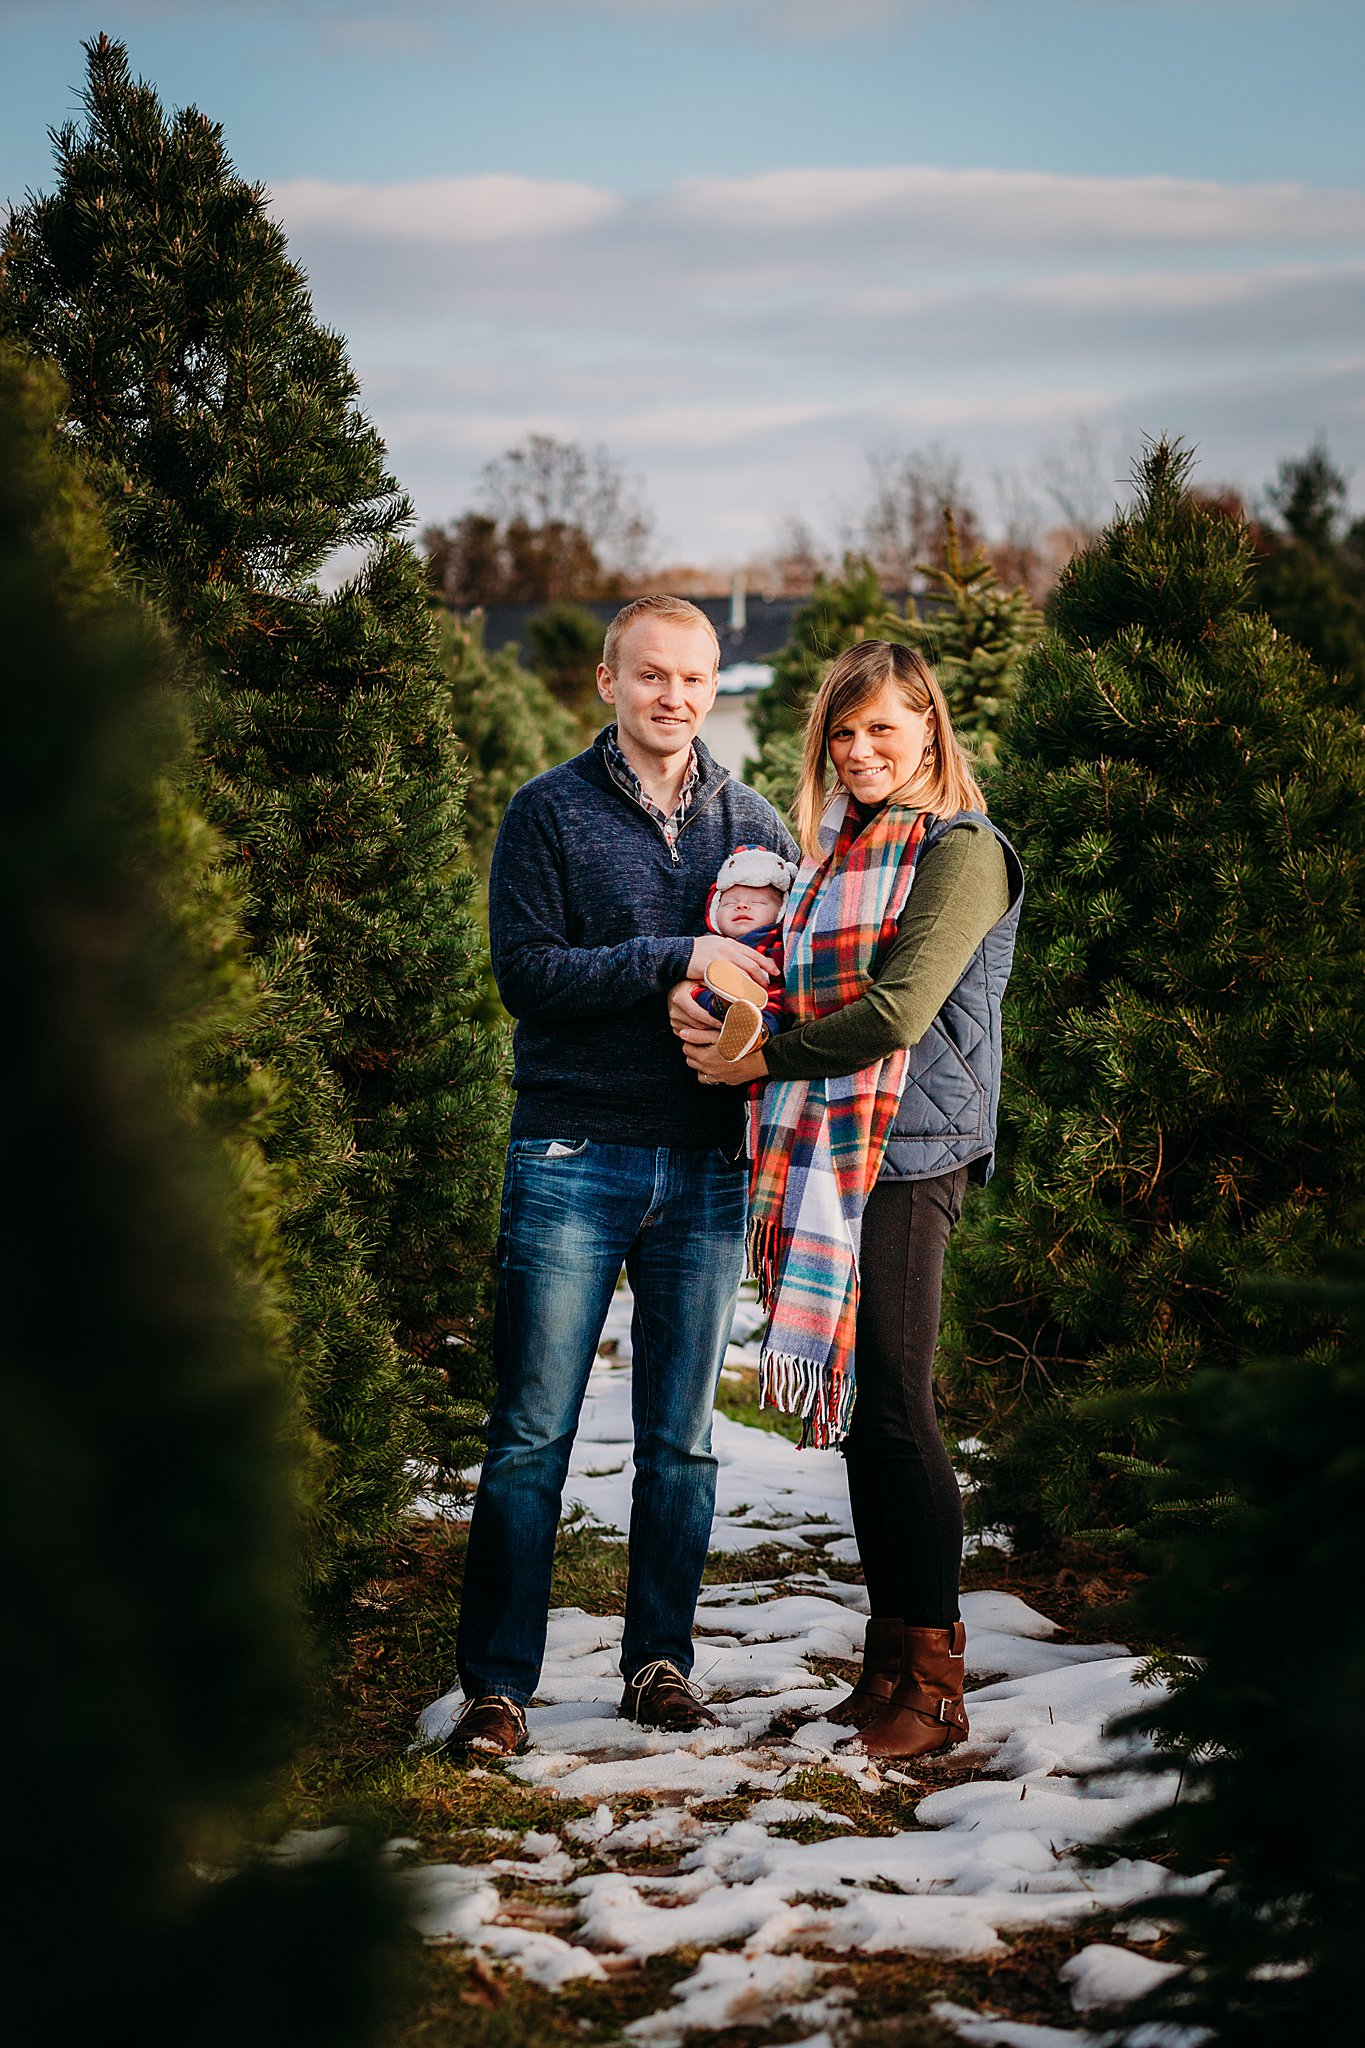 Family photography at Hague's Christmas Tree Farm